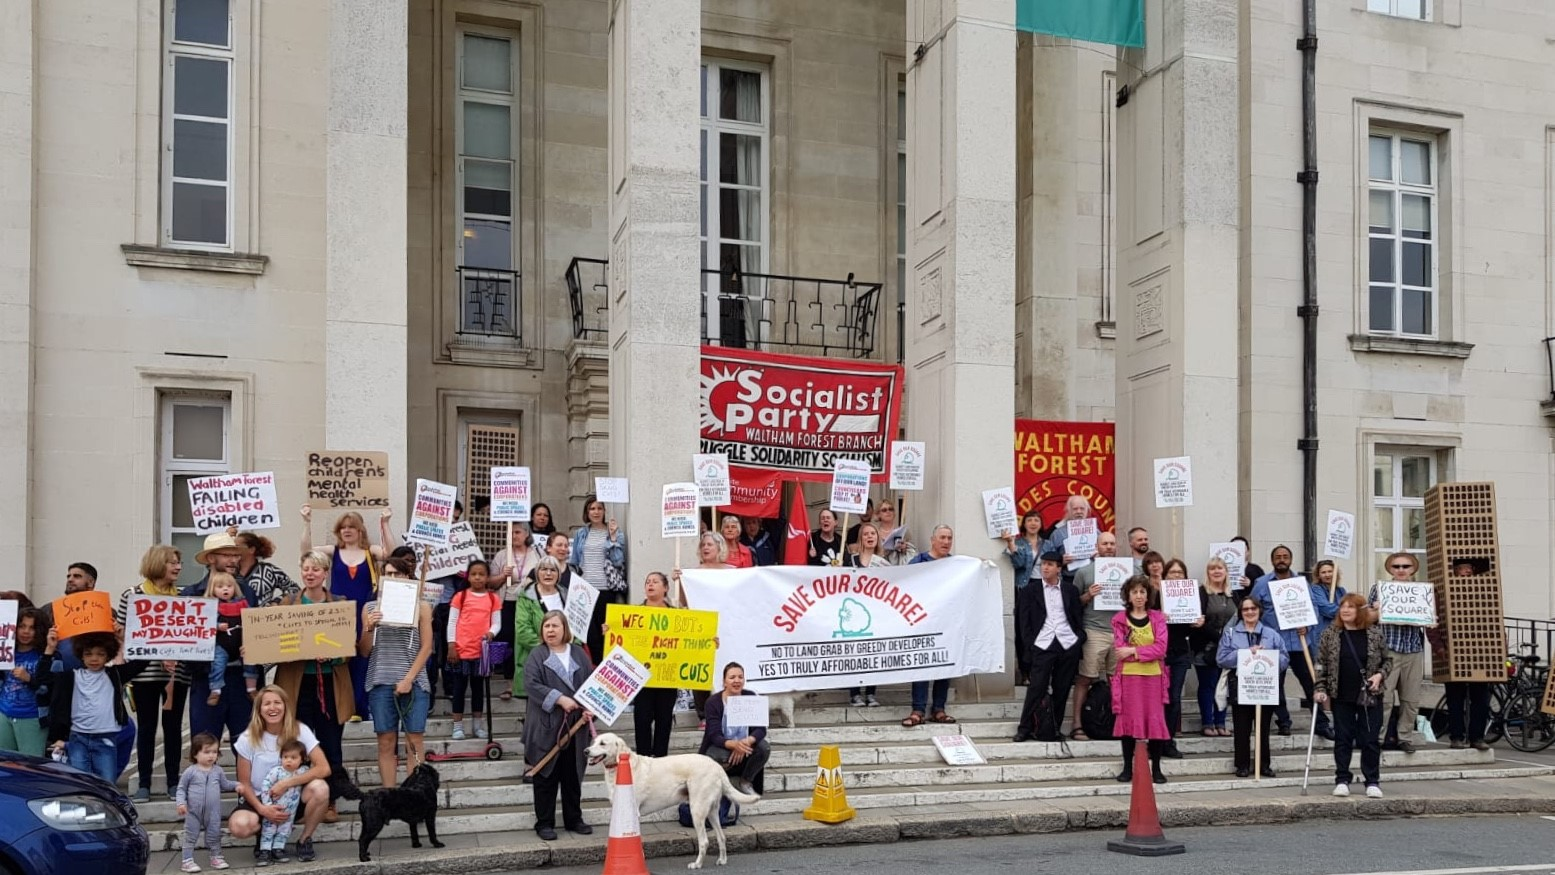 The Save Our Square campaign have been fighting Waltham Forest Council's local plan